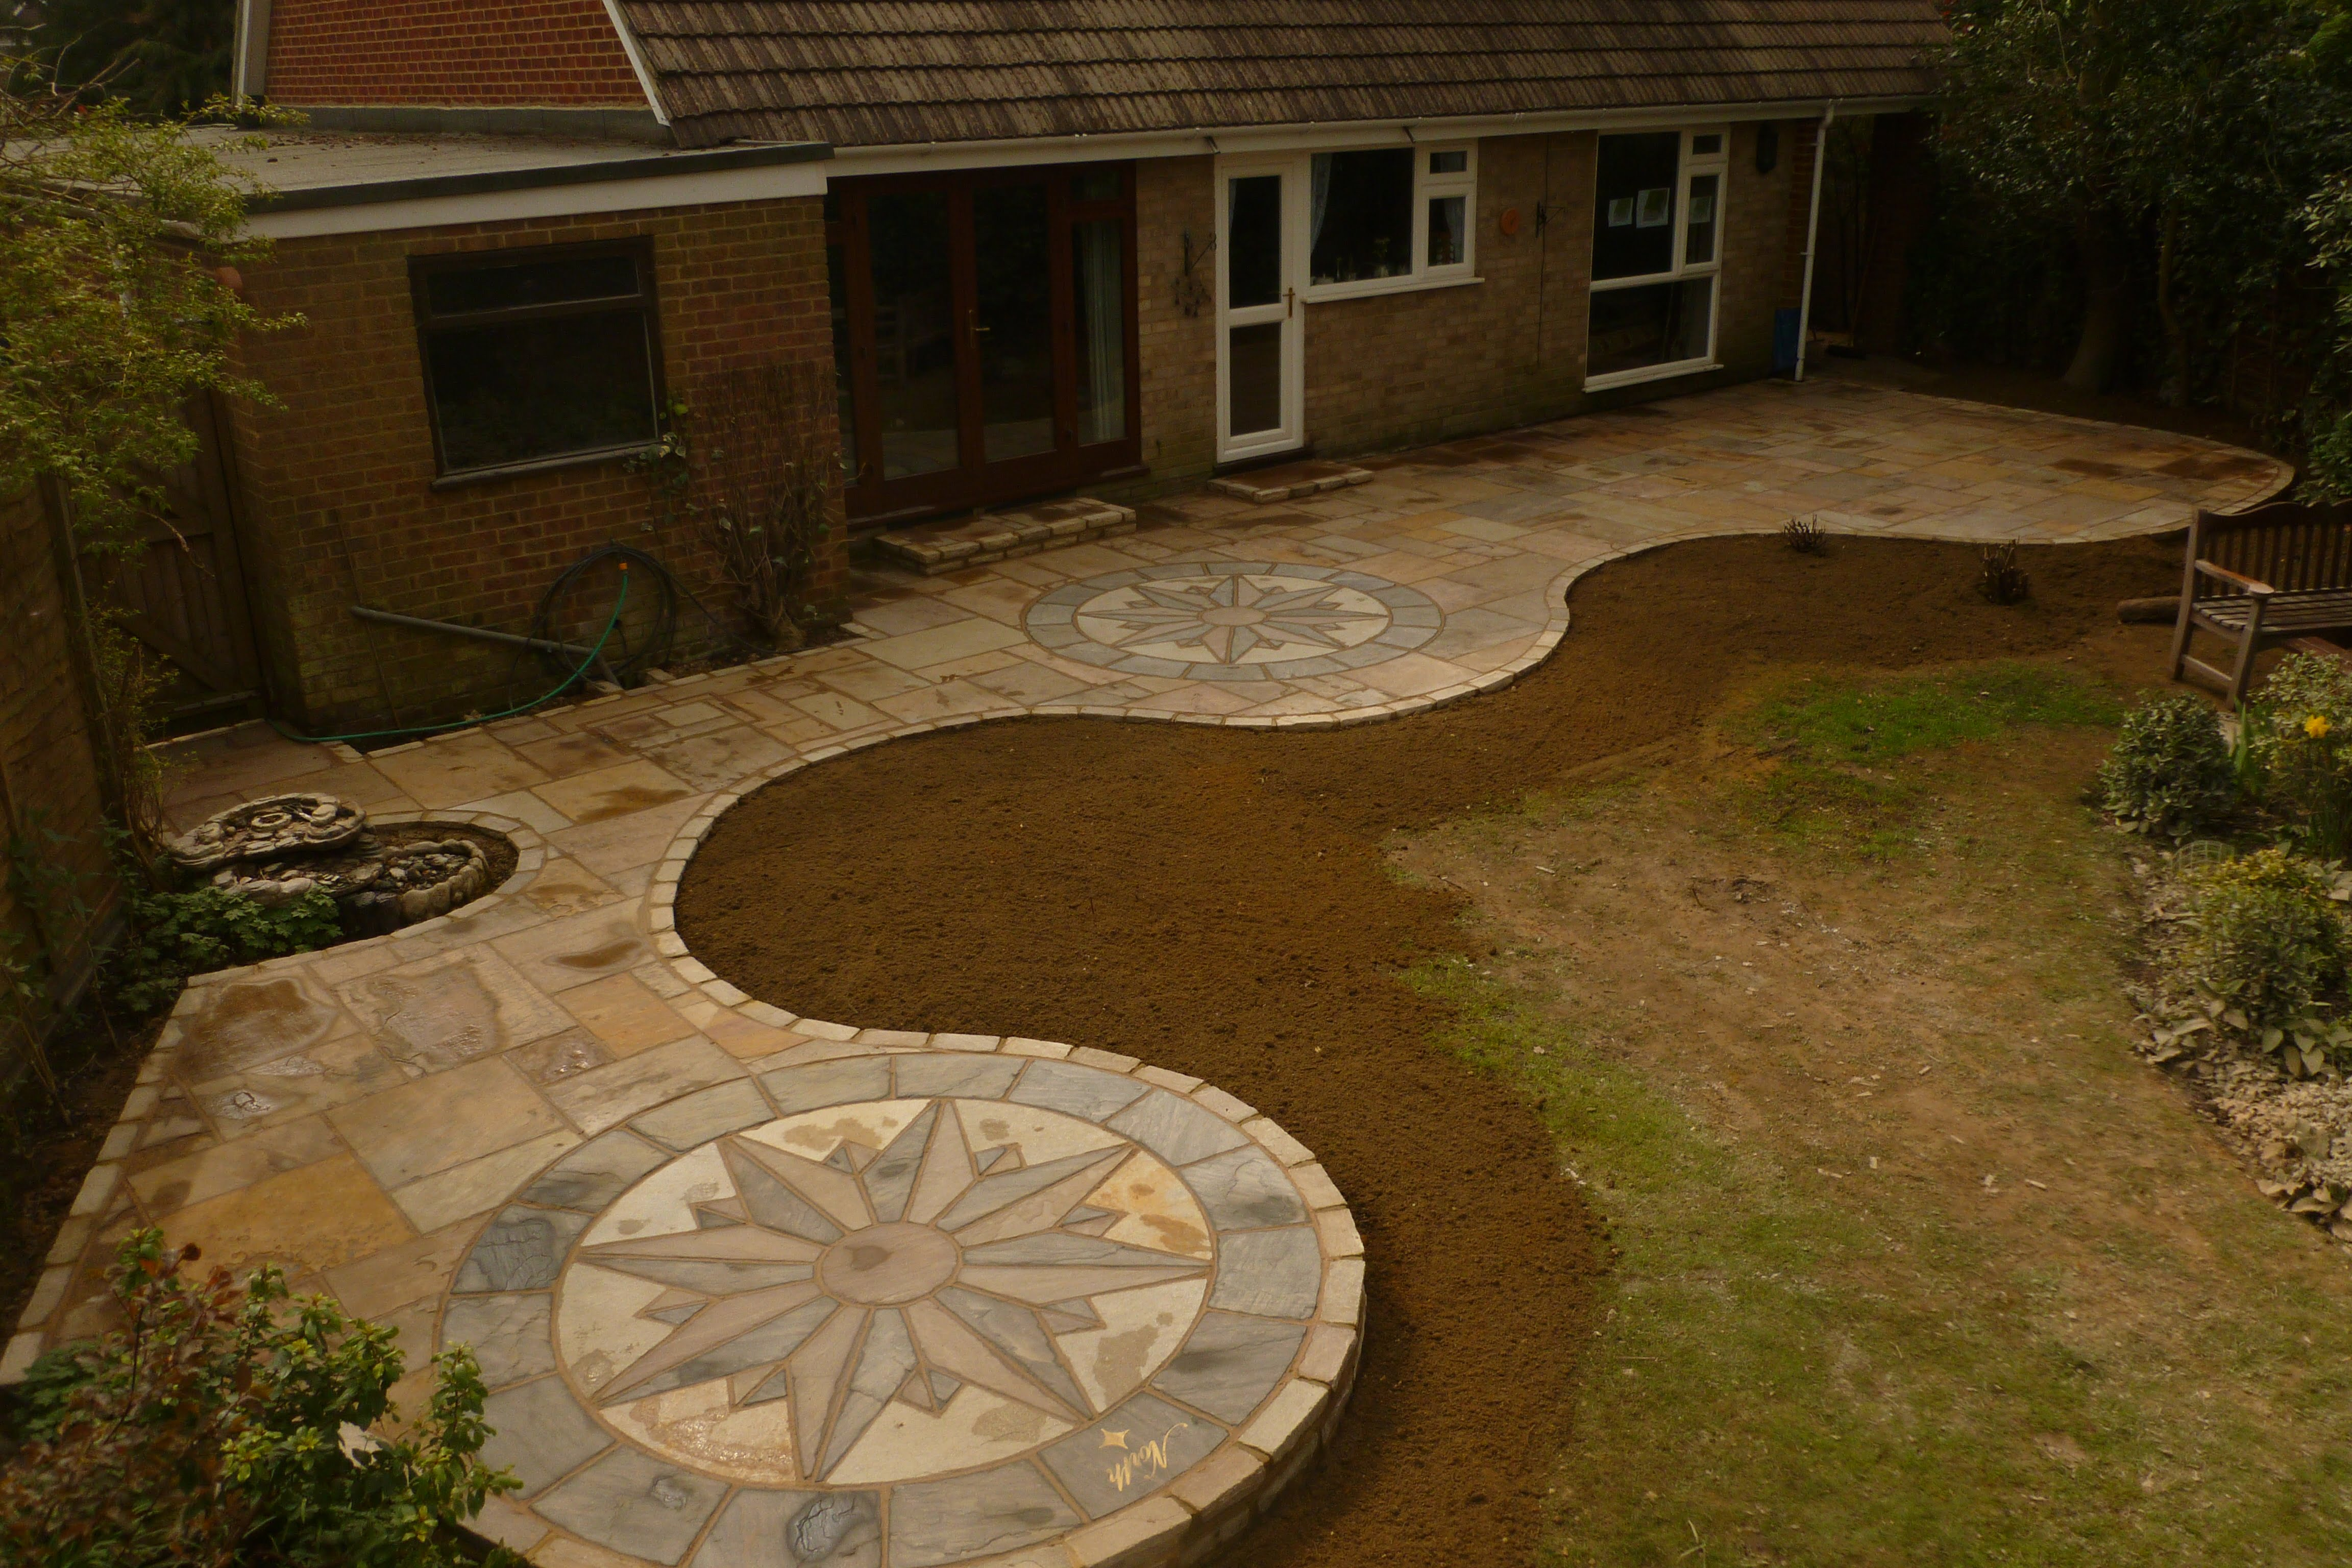 Stonemarket Vintage Abbey Earthern Paving with Vintage Compass Circles as installed by the landscape division